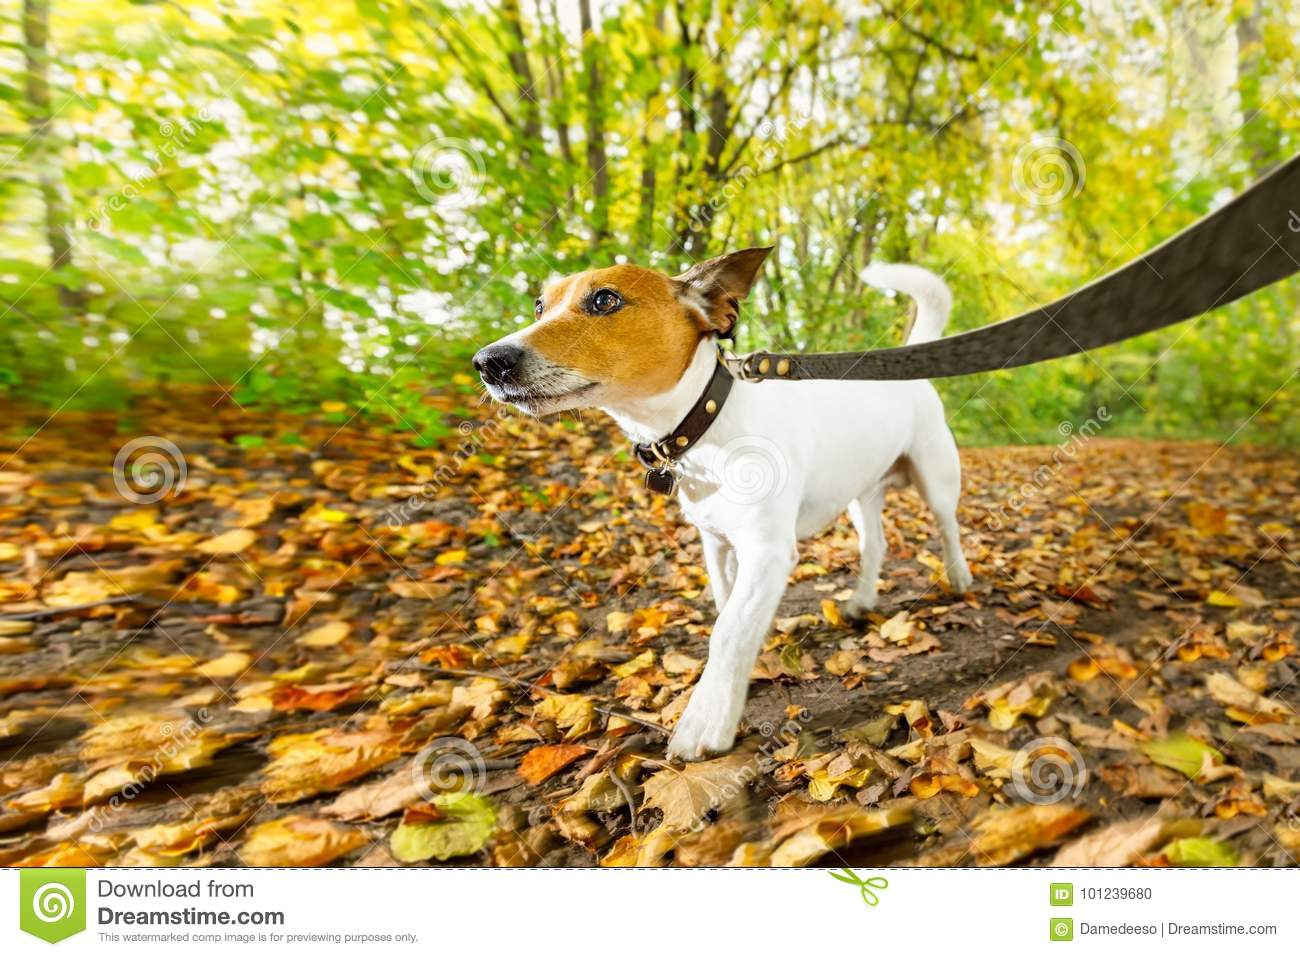 Dog running or walking in autumn